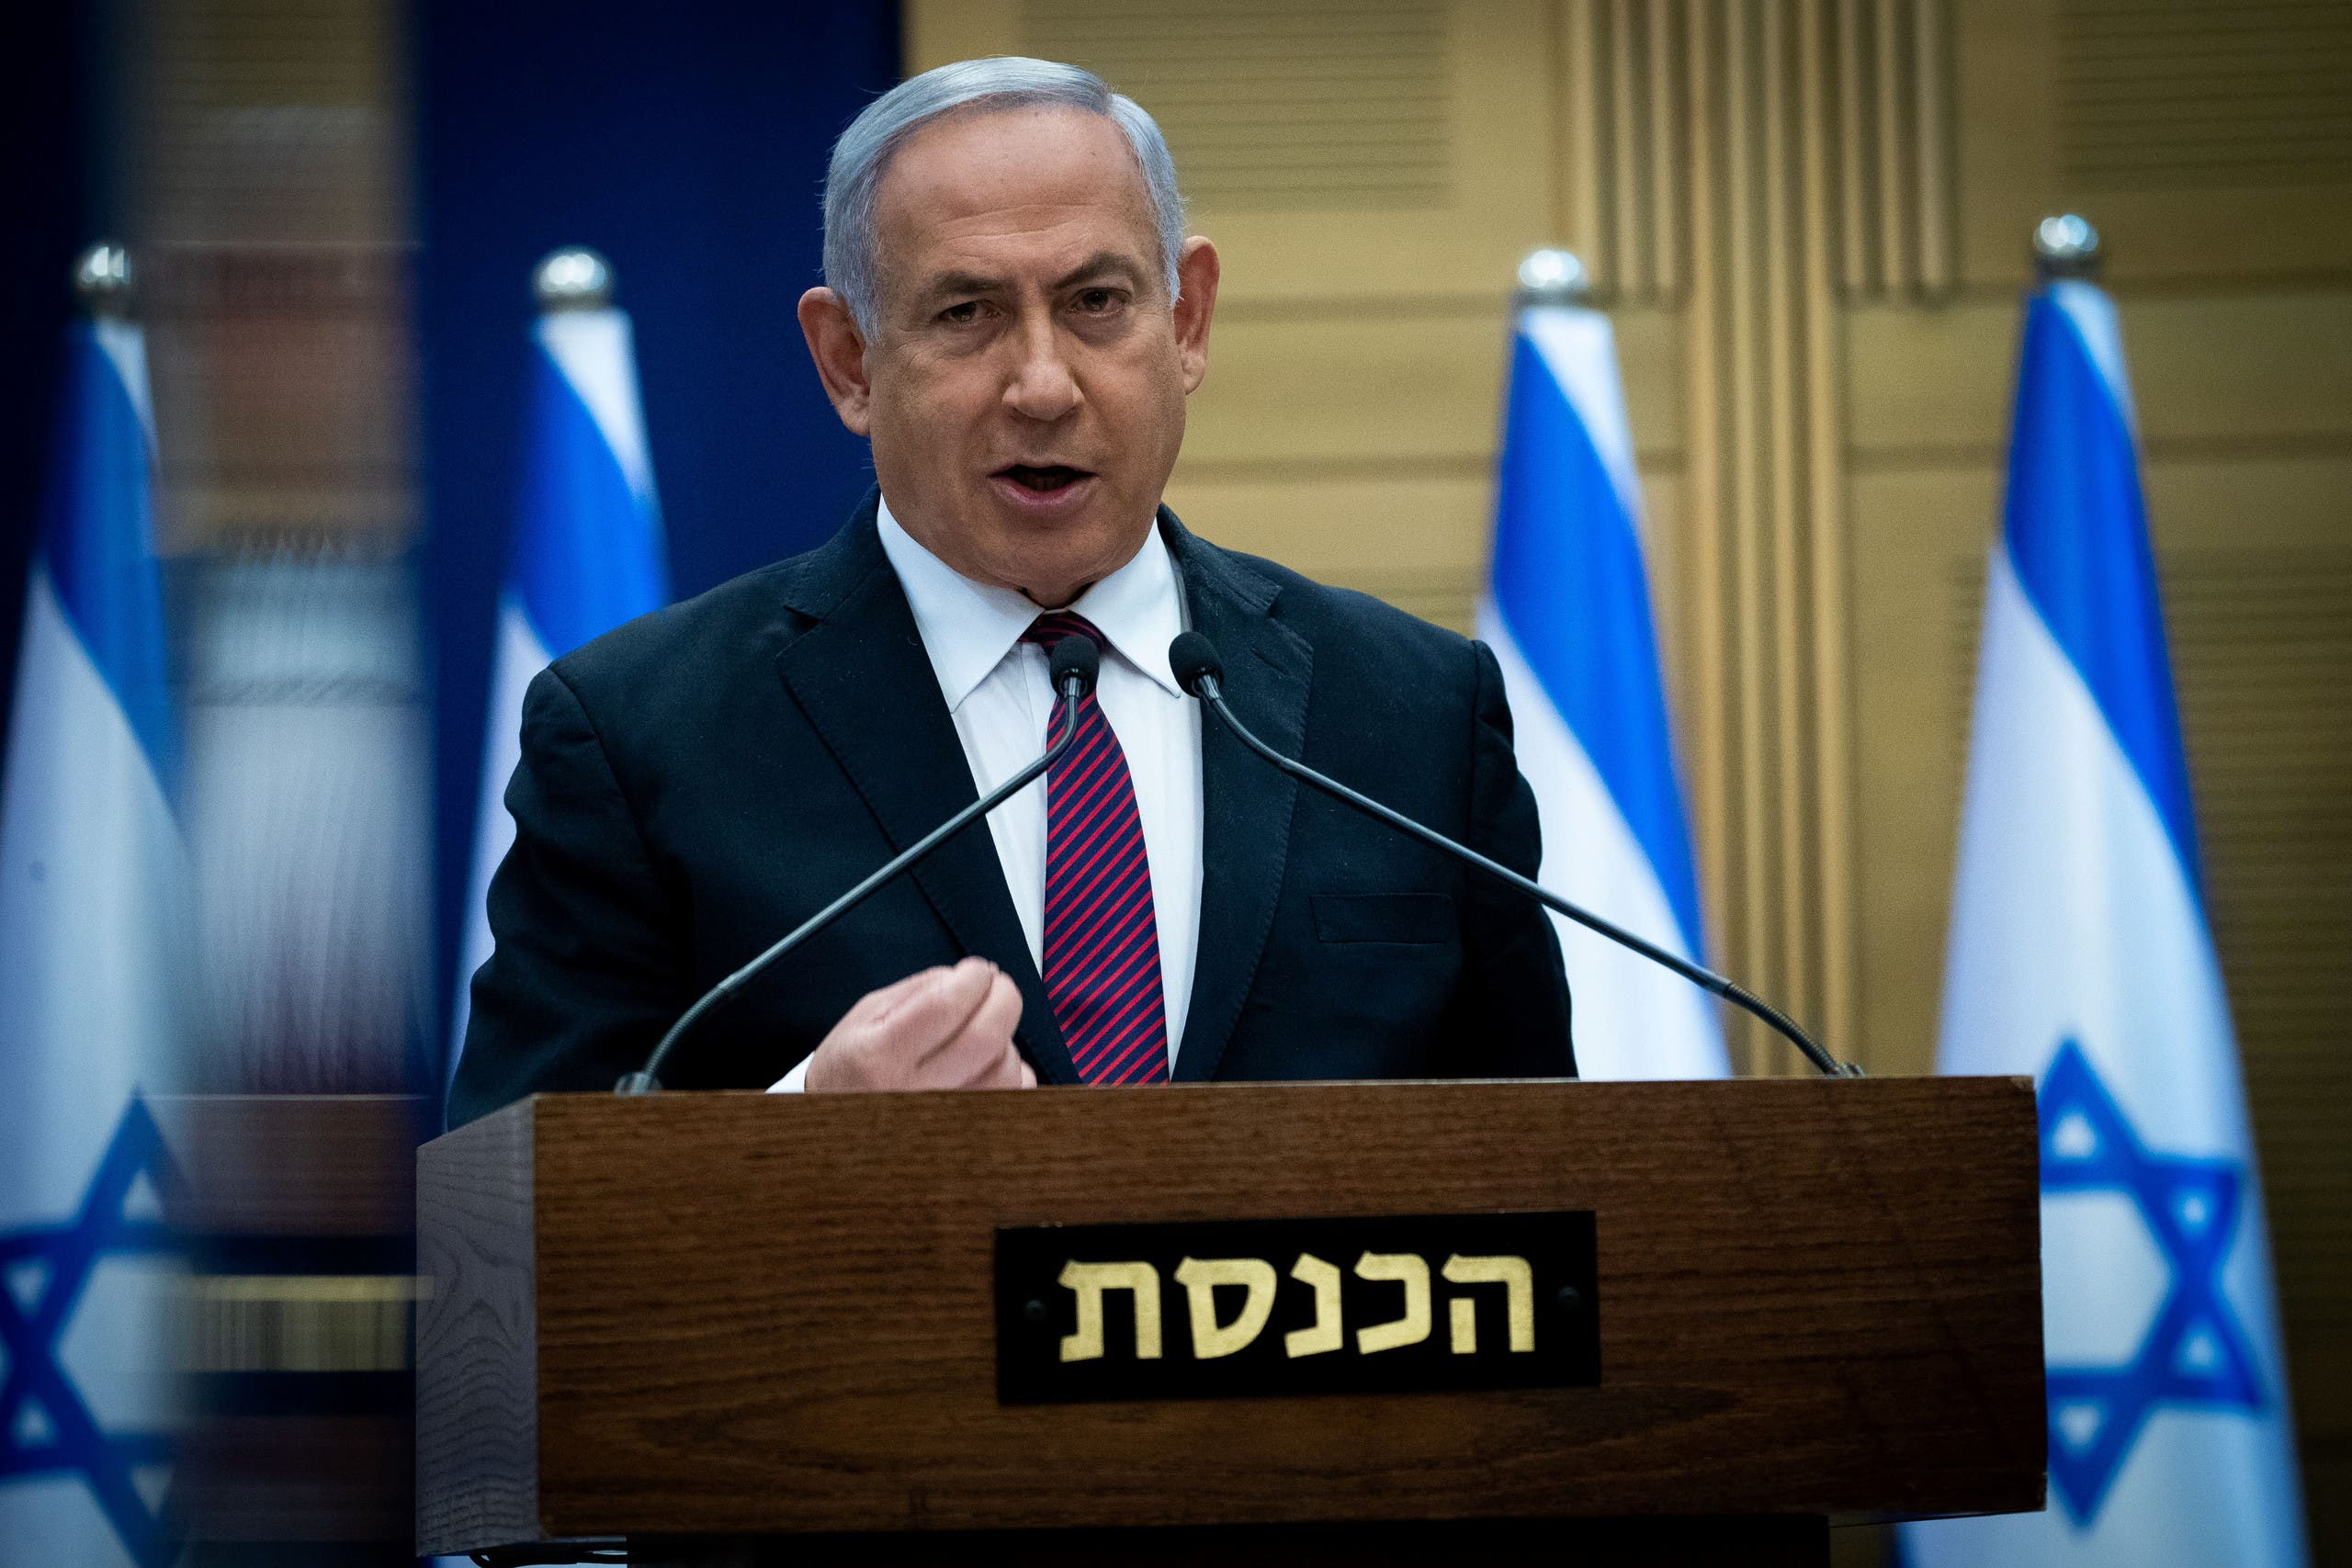 Israeli Prime Minister Benjamin Netanyahu delivers a statement to Likud party MKs at the Knesset (Israel's parliament) in Jerusalem, December 2, 2020. Yonatan Sindel/Pool via REUTERS